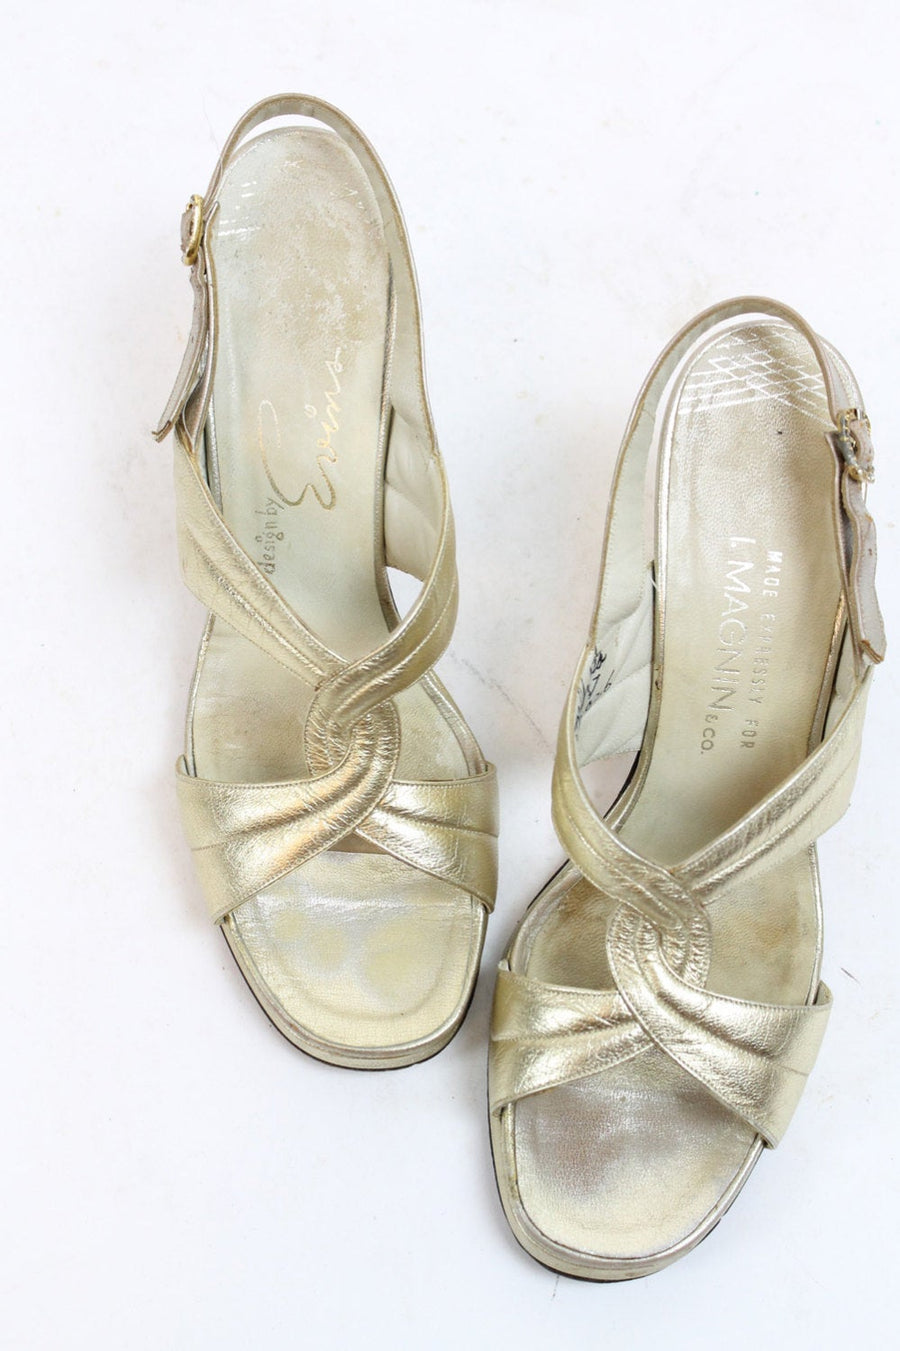 1960s gold sandals size 7.5 us | vintage I Magnin twisted shoes